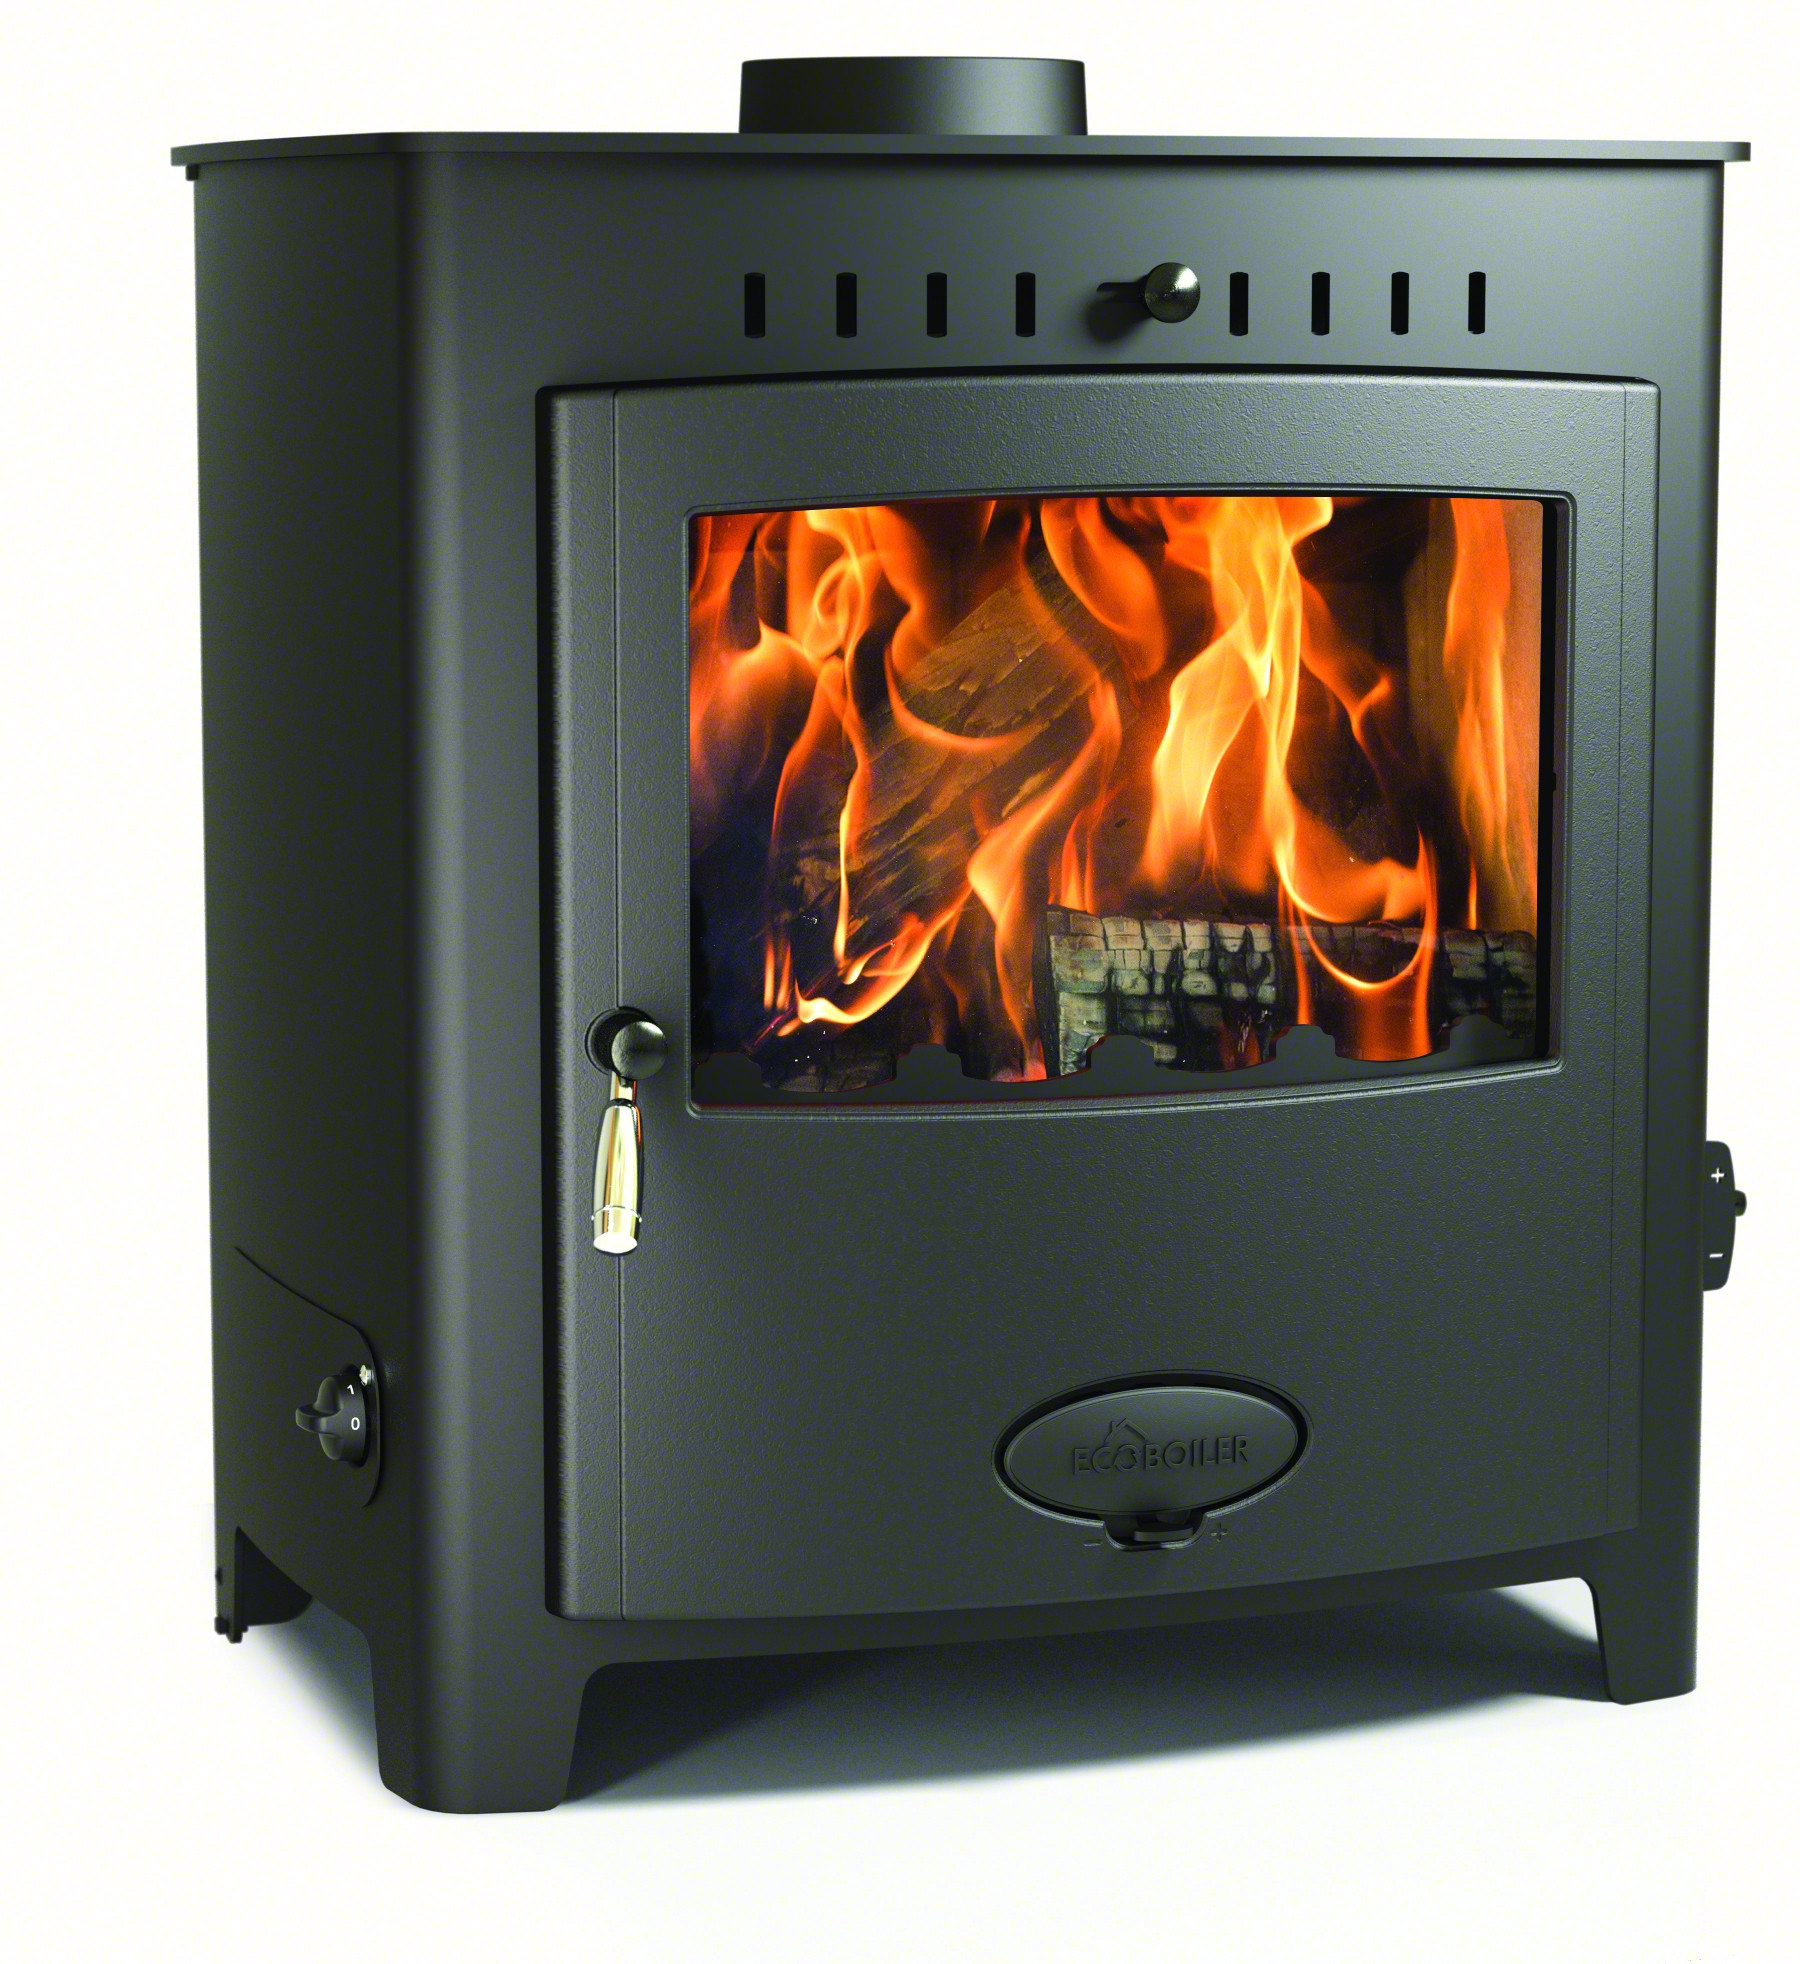 Stratford 25HE Ecoboiler Wood Burning Multi Fuel Boiler Stove